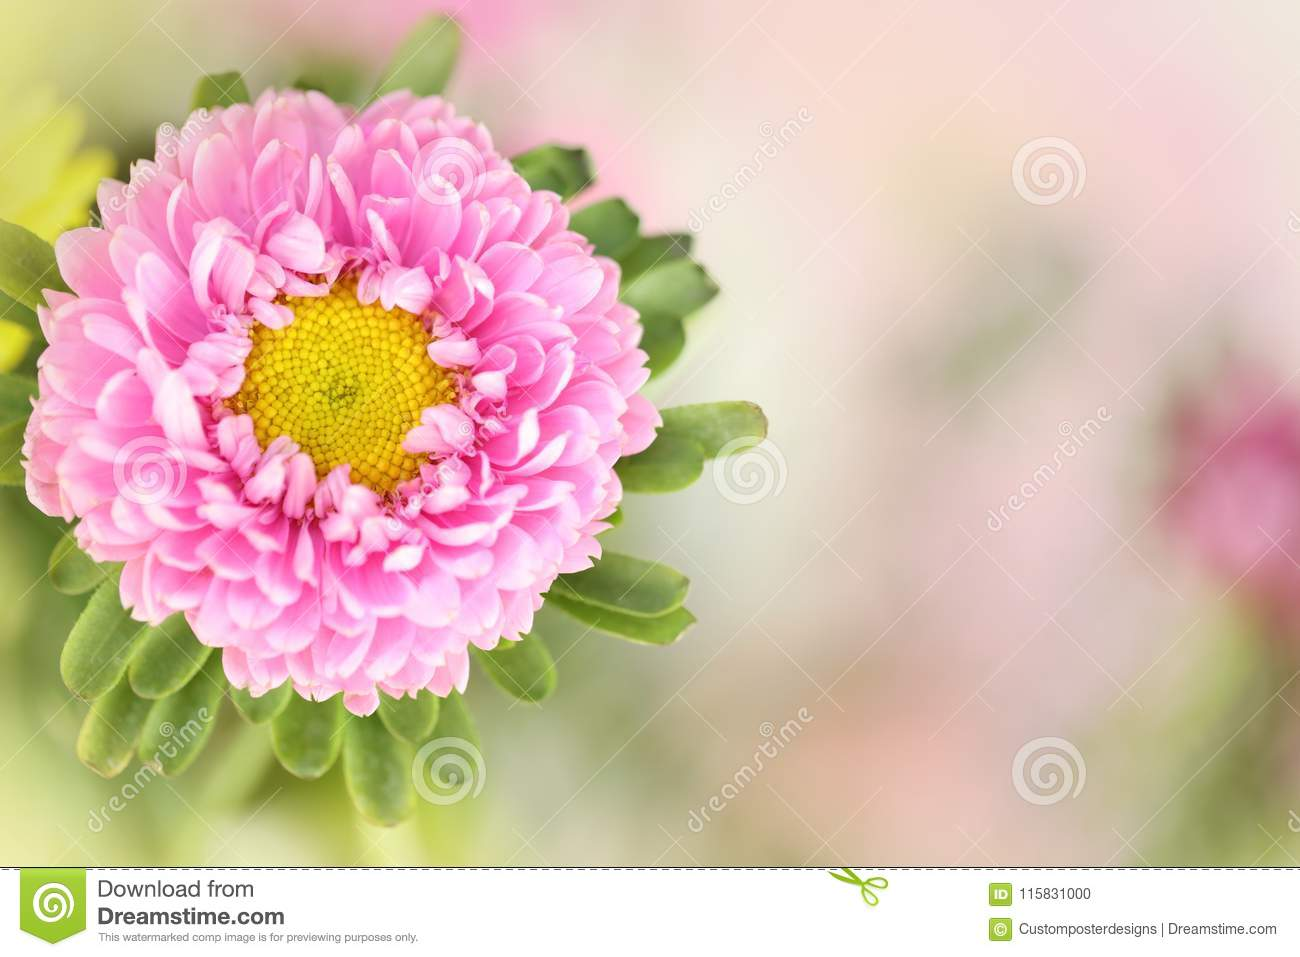 A pink flower in a horizontal presentation.